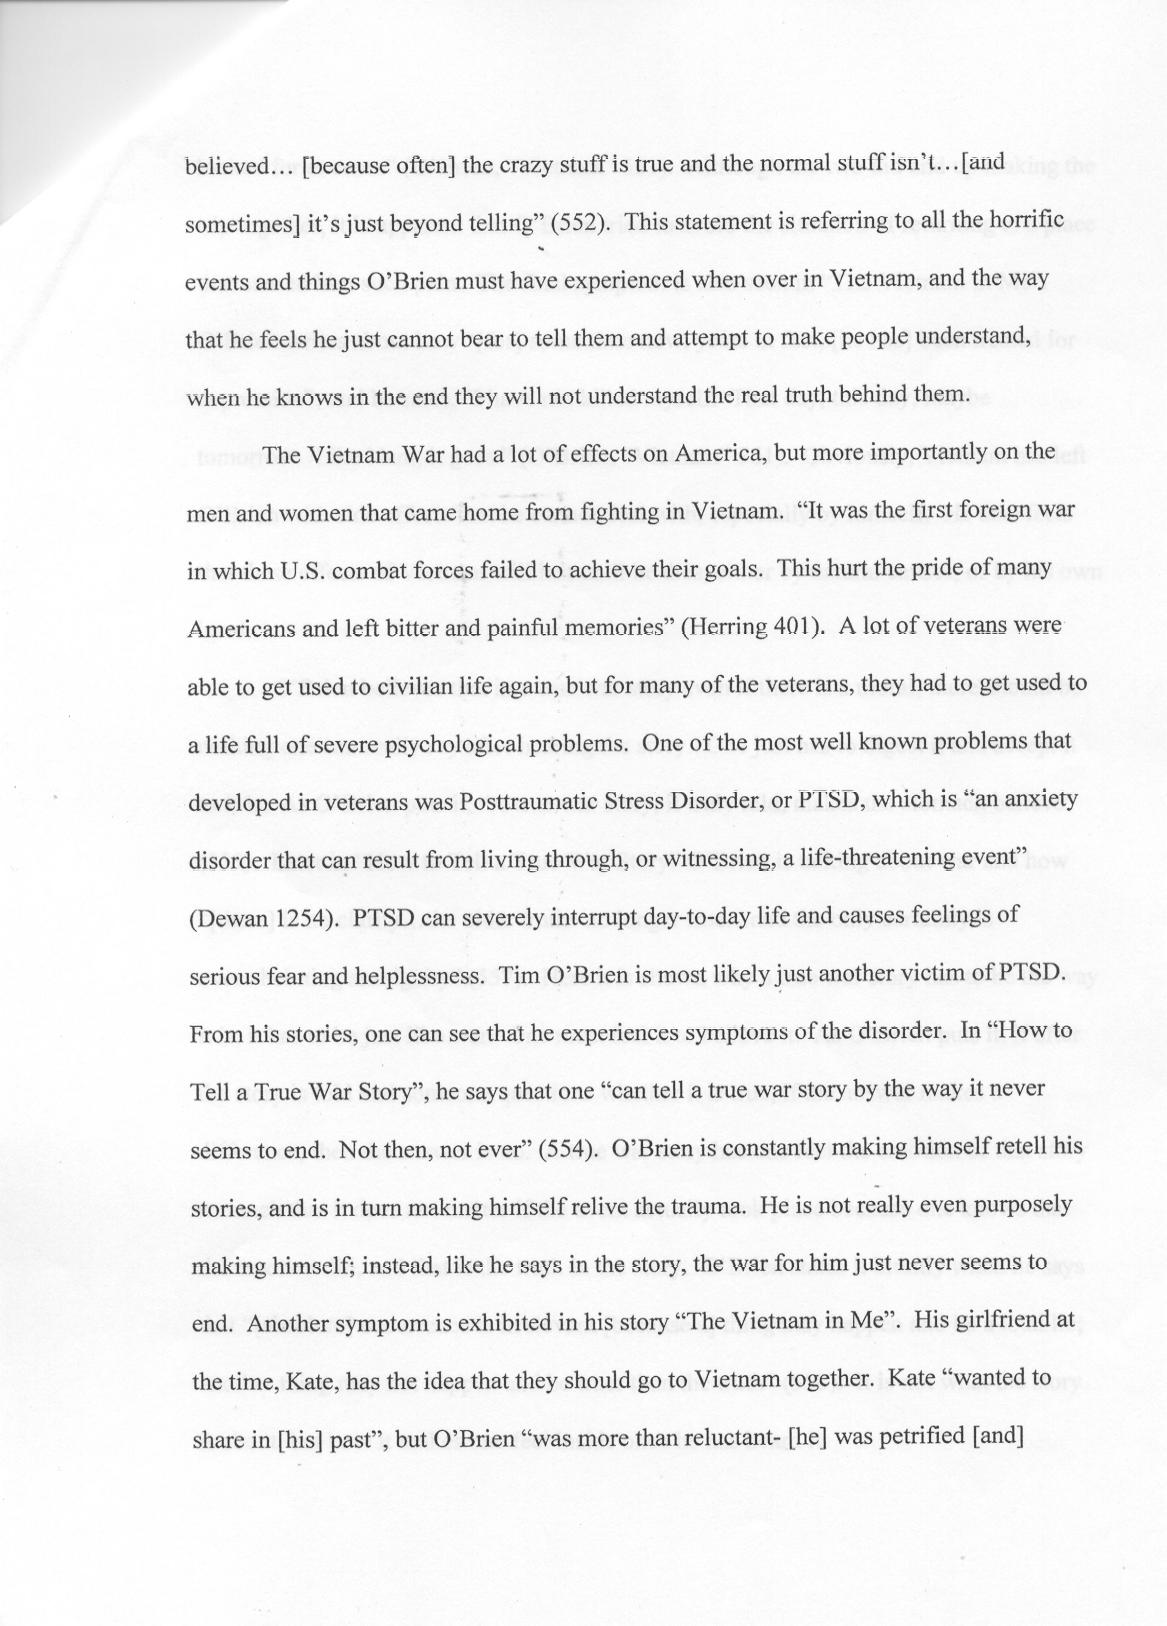 005 Research Paper Post Traumatic Stress Disorder Outline Ess2ex1 4 Wondrous Topics Essay Full